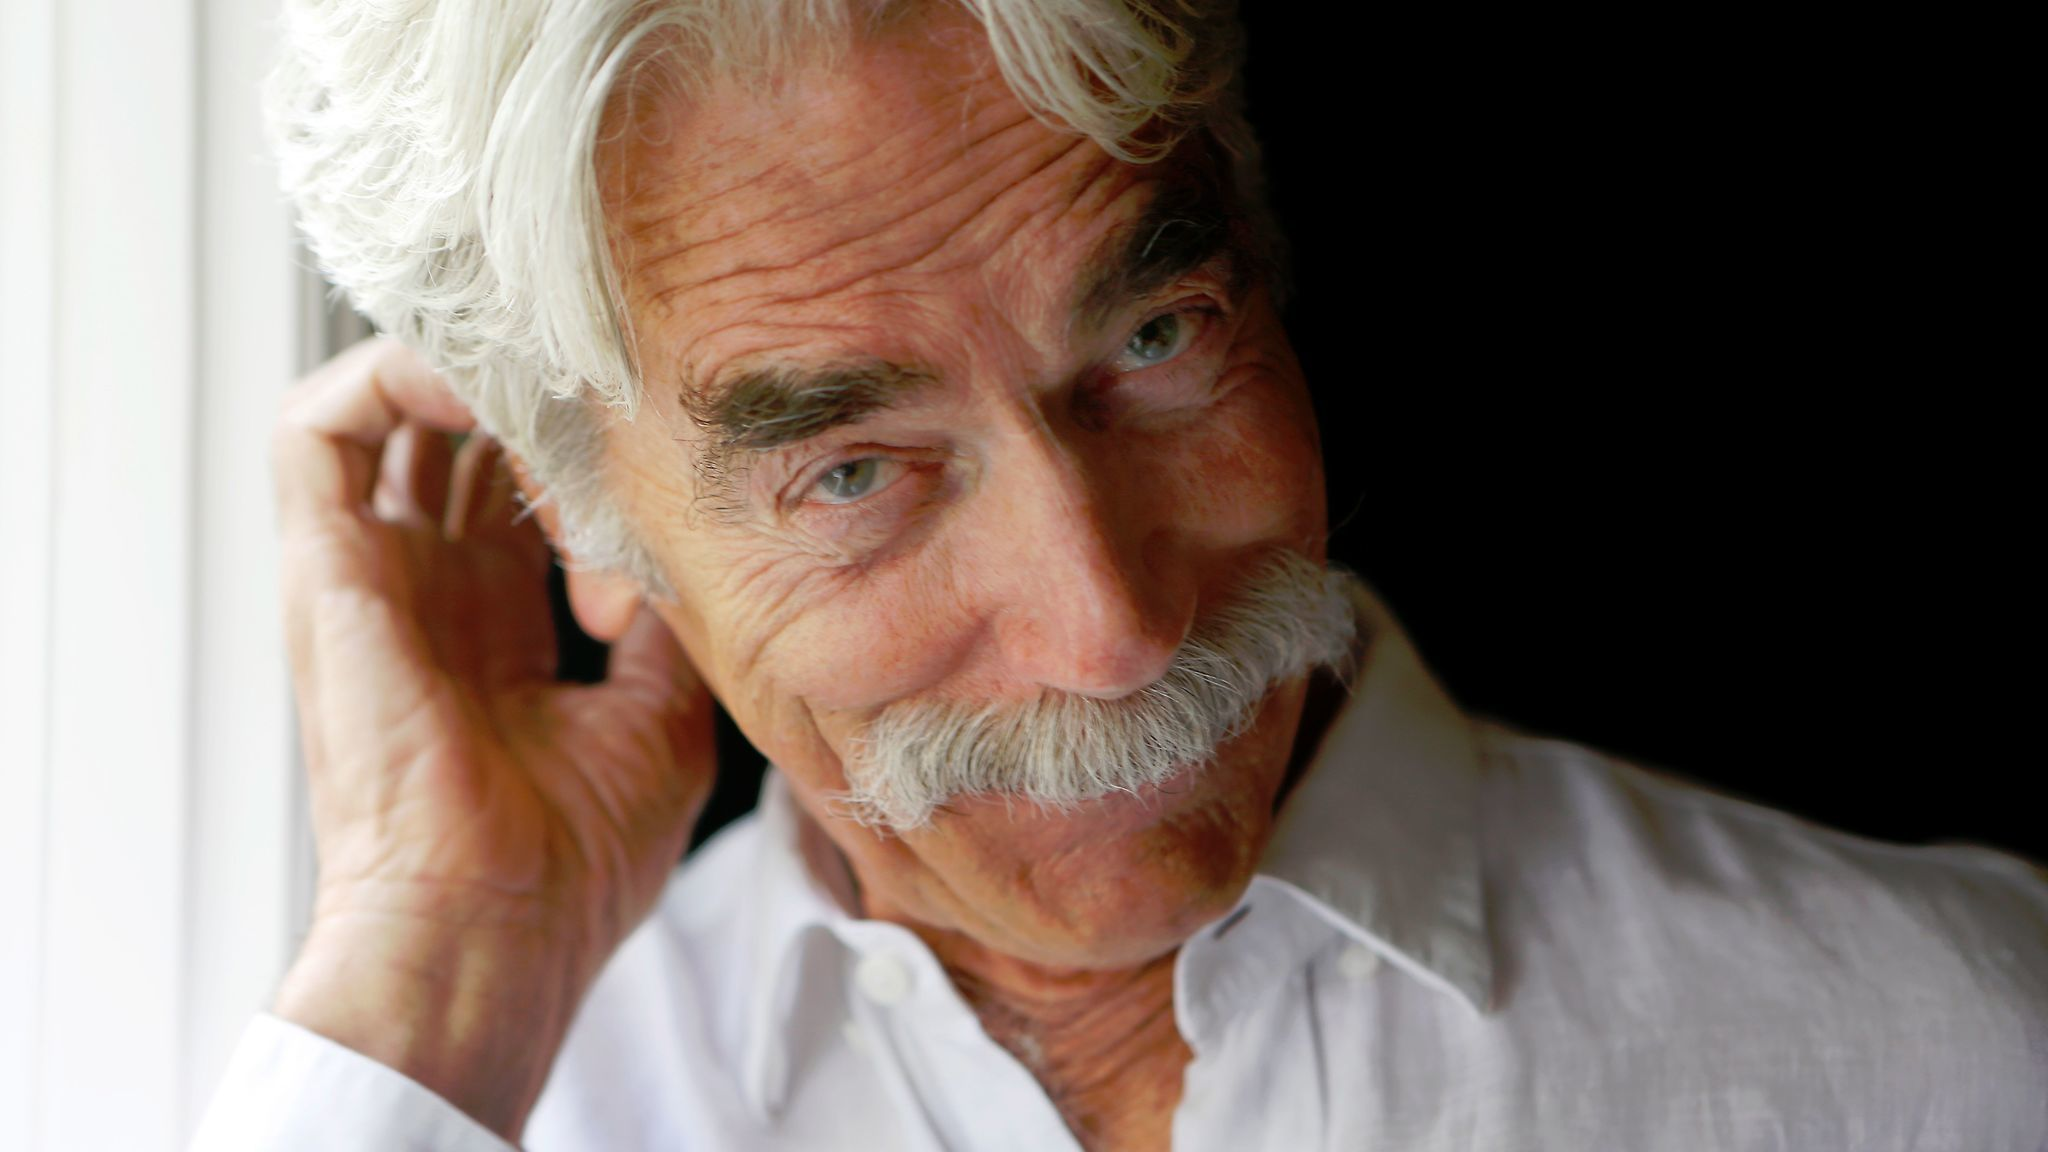 Sam Elliott discusses 'The Ranch' and the macho influence on his own career